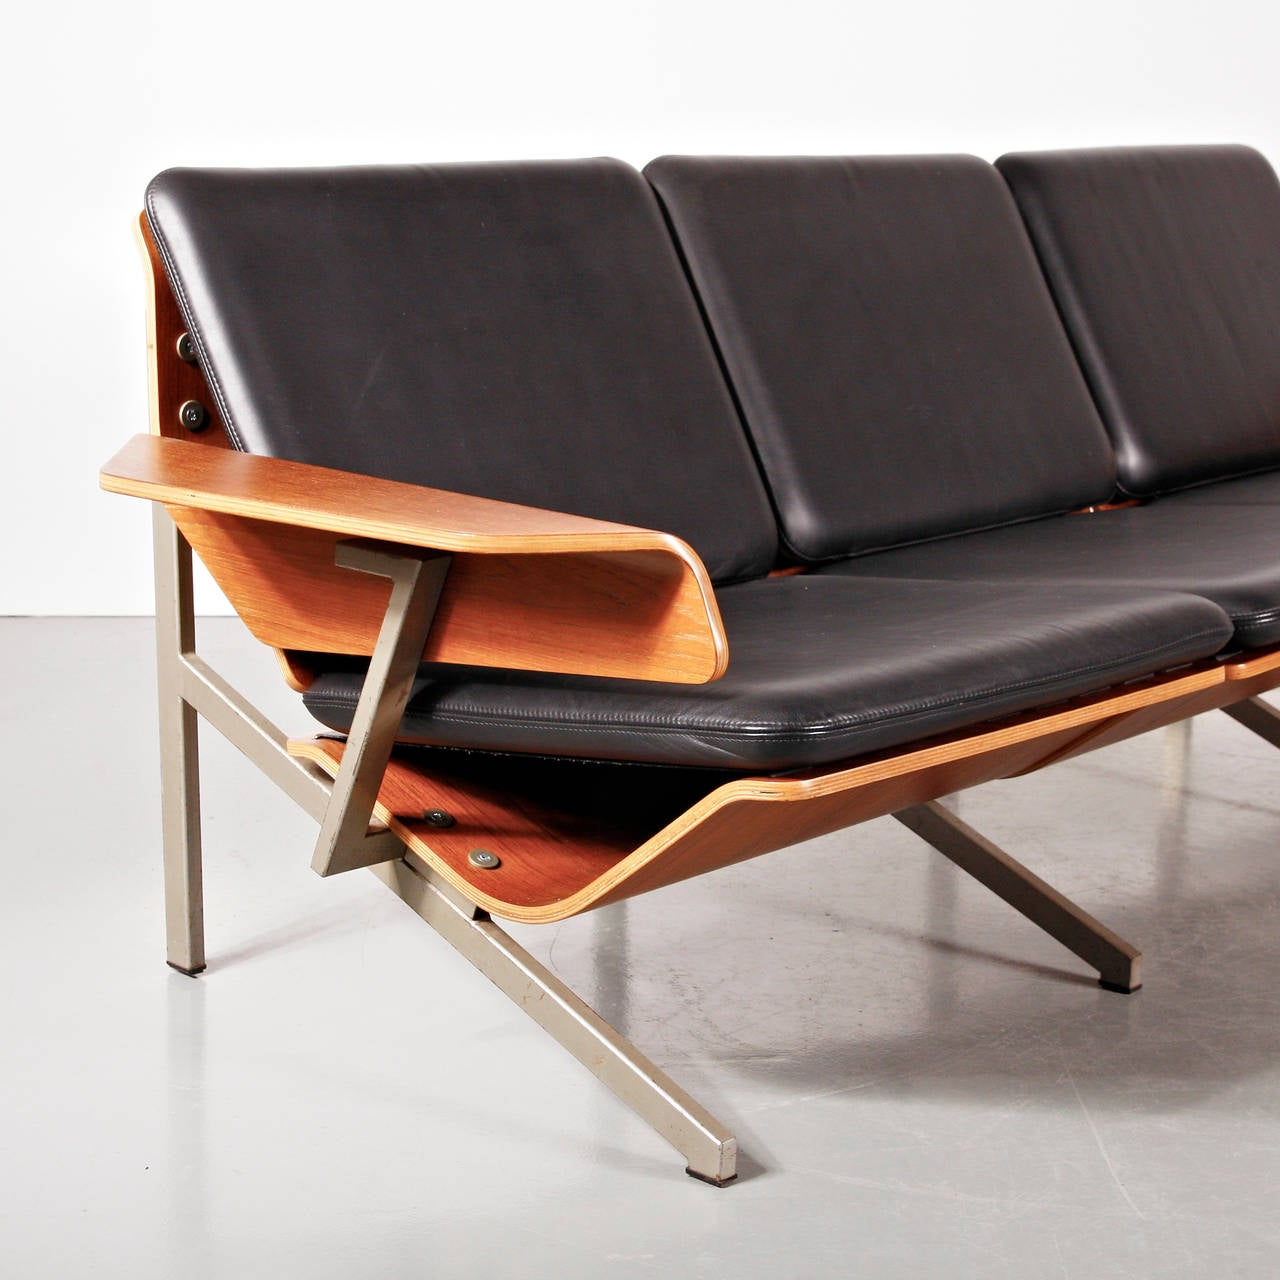 Rare Cornelis Zitman Three-Seat Leather Sofa, 1964 For Sale 1